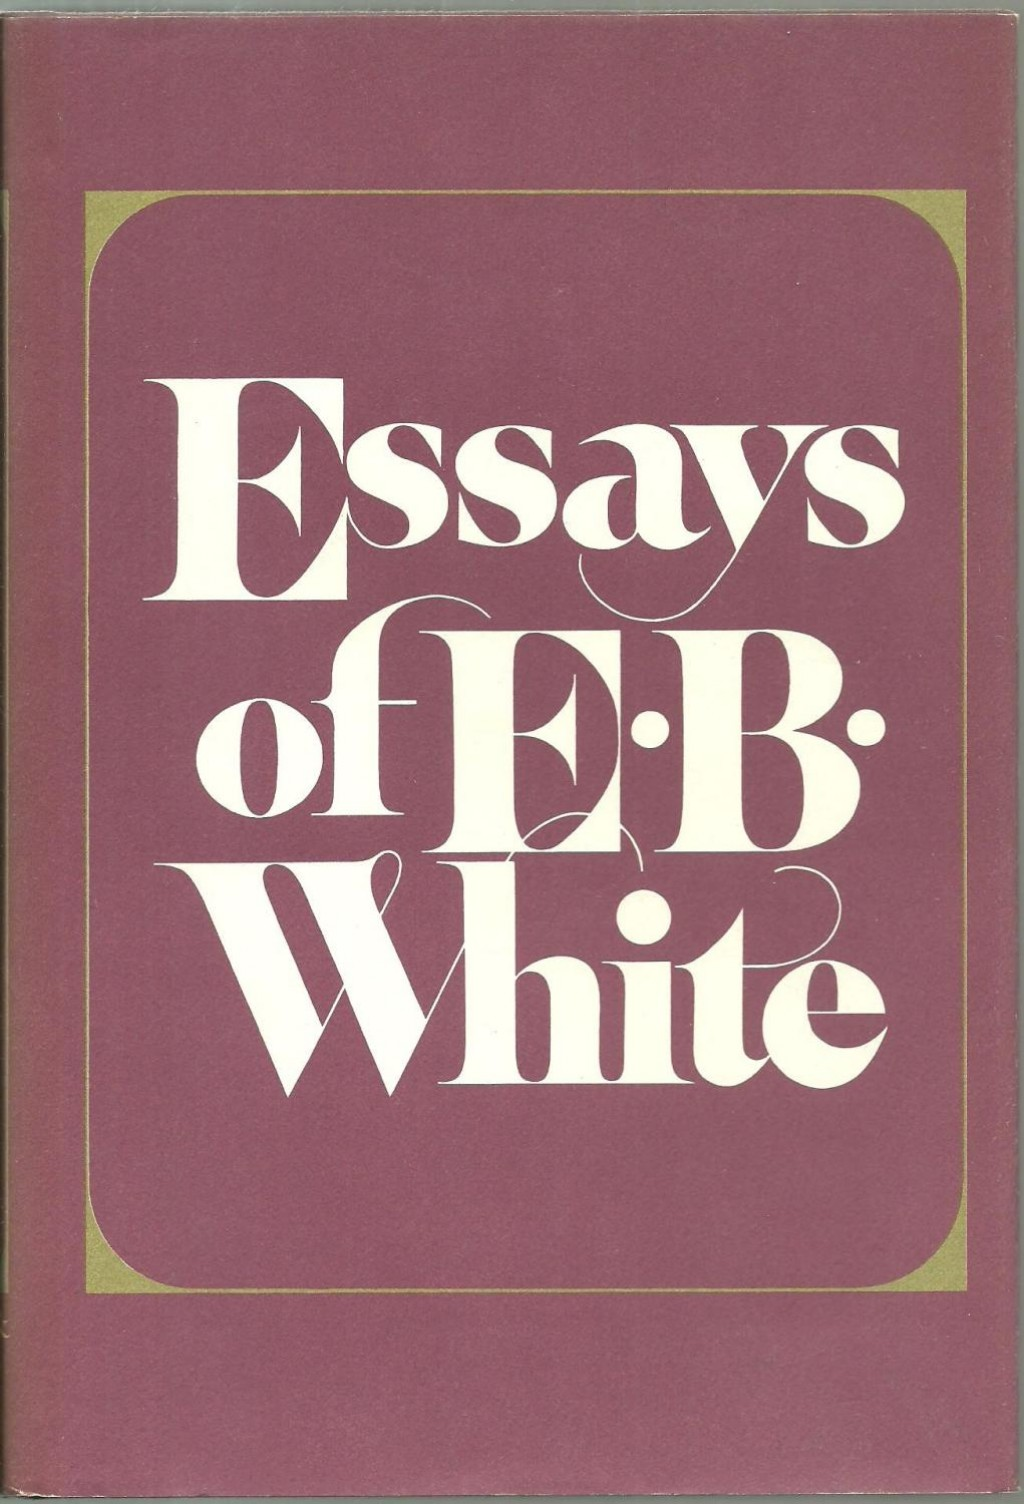 007 Essays Of White Essay Impressive Eb Table Contents Analysis White's Once More To The Lake Large